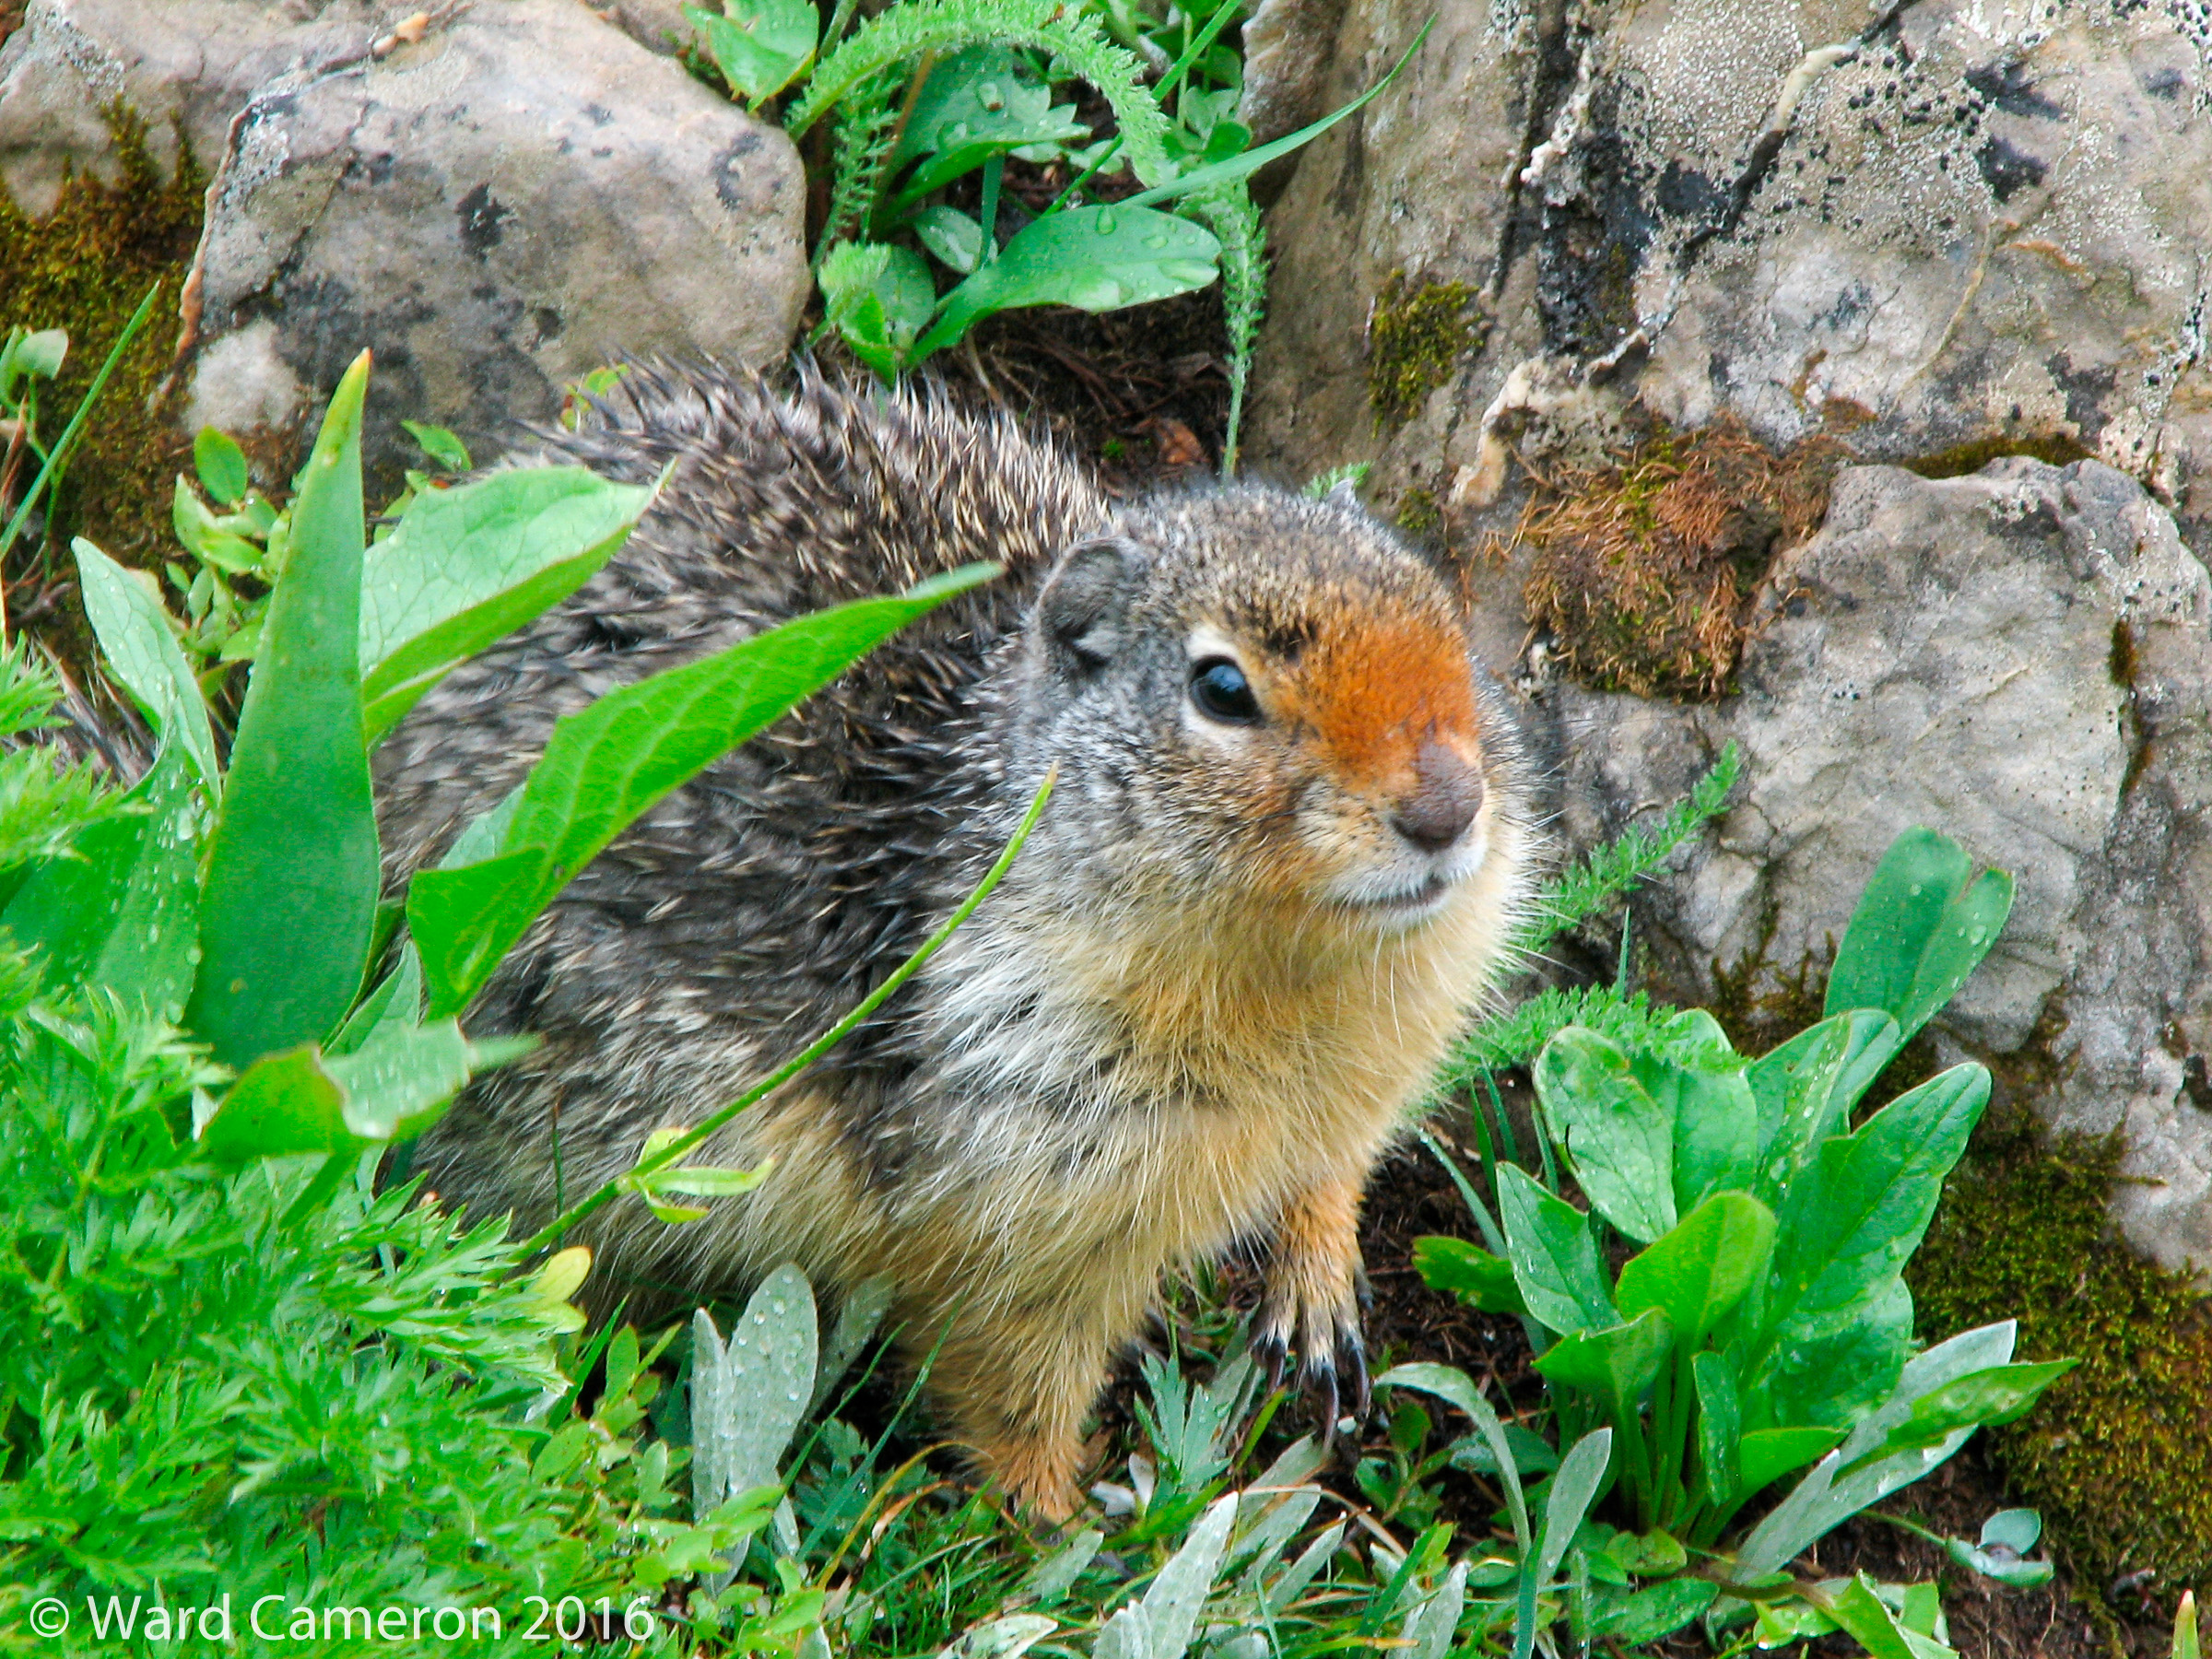 photo of a Columbian ground squirrel